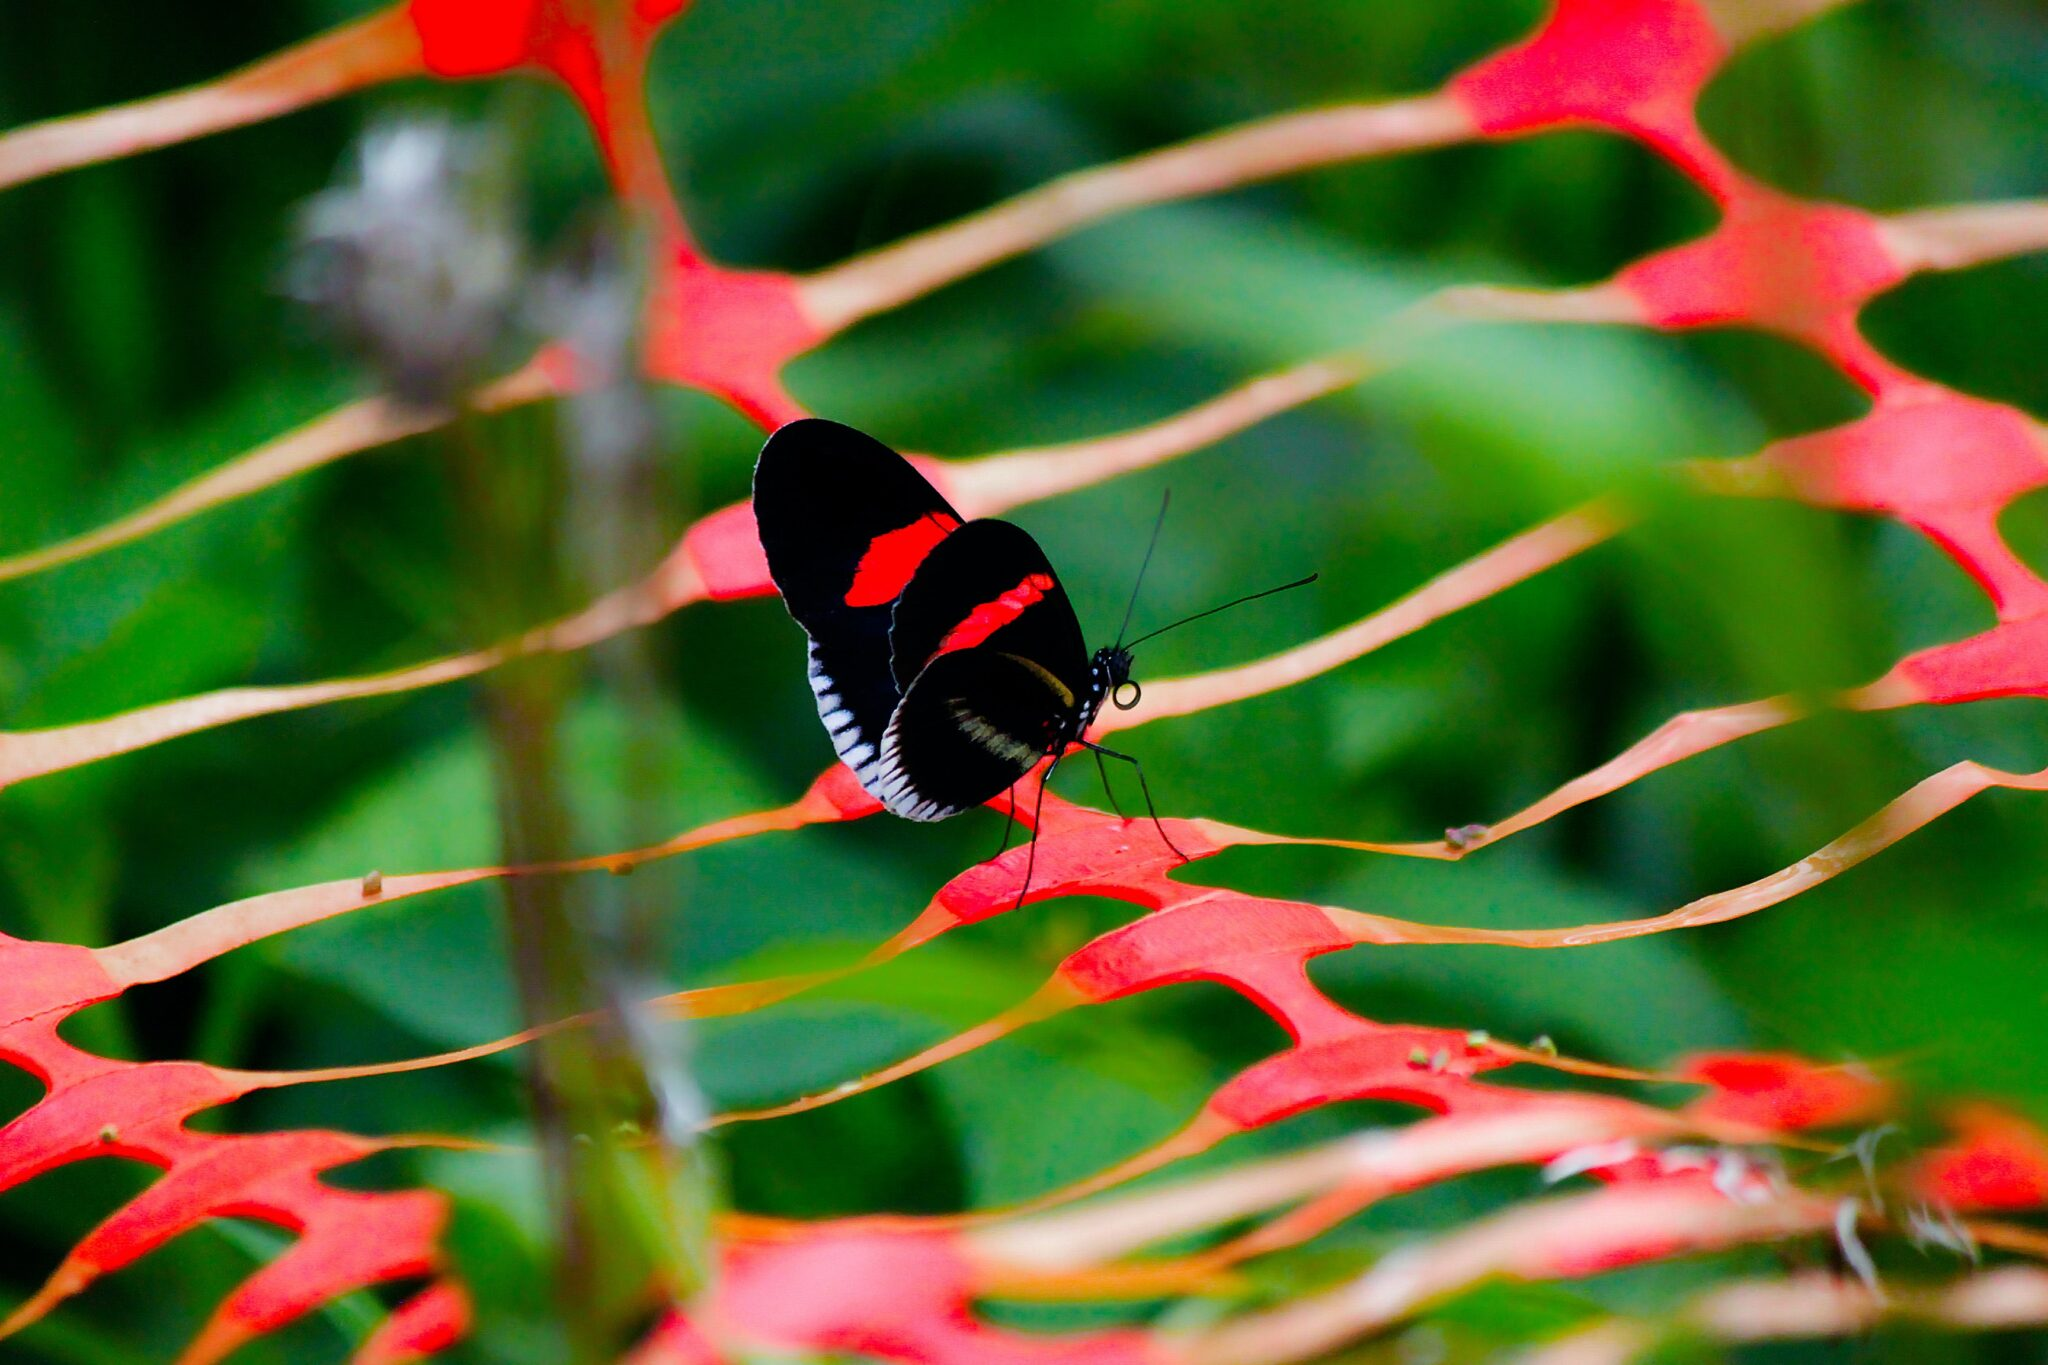 small black butterfly on a plant